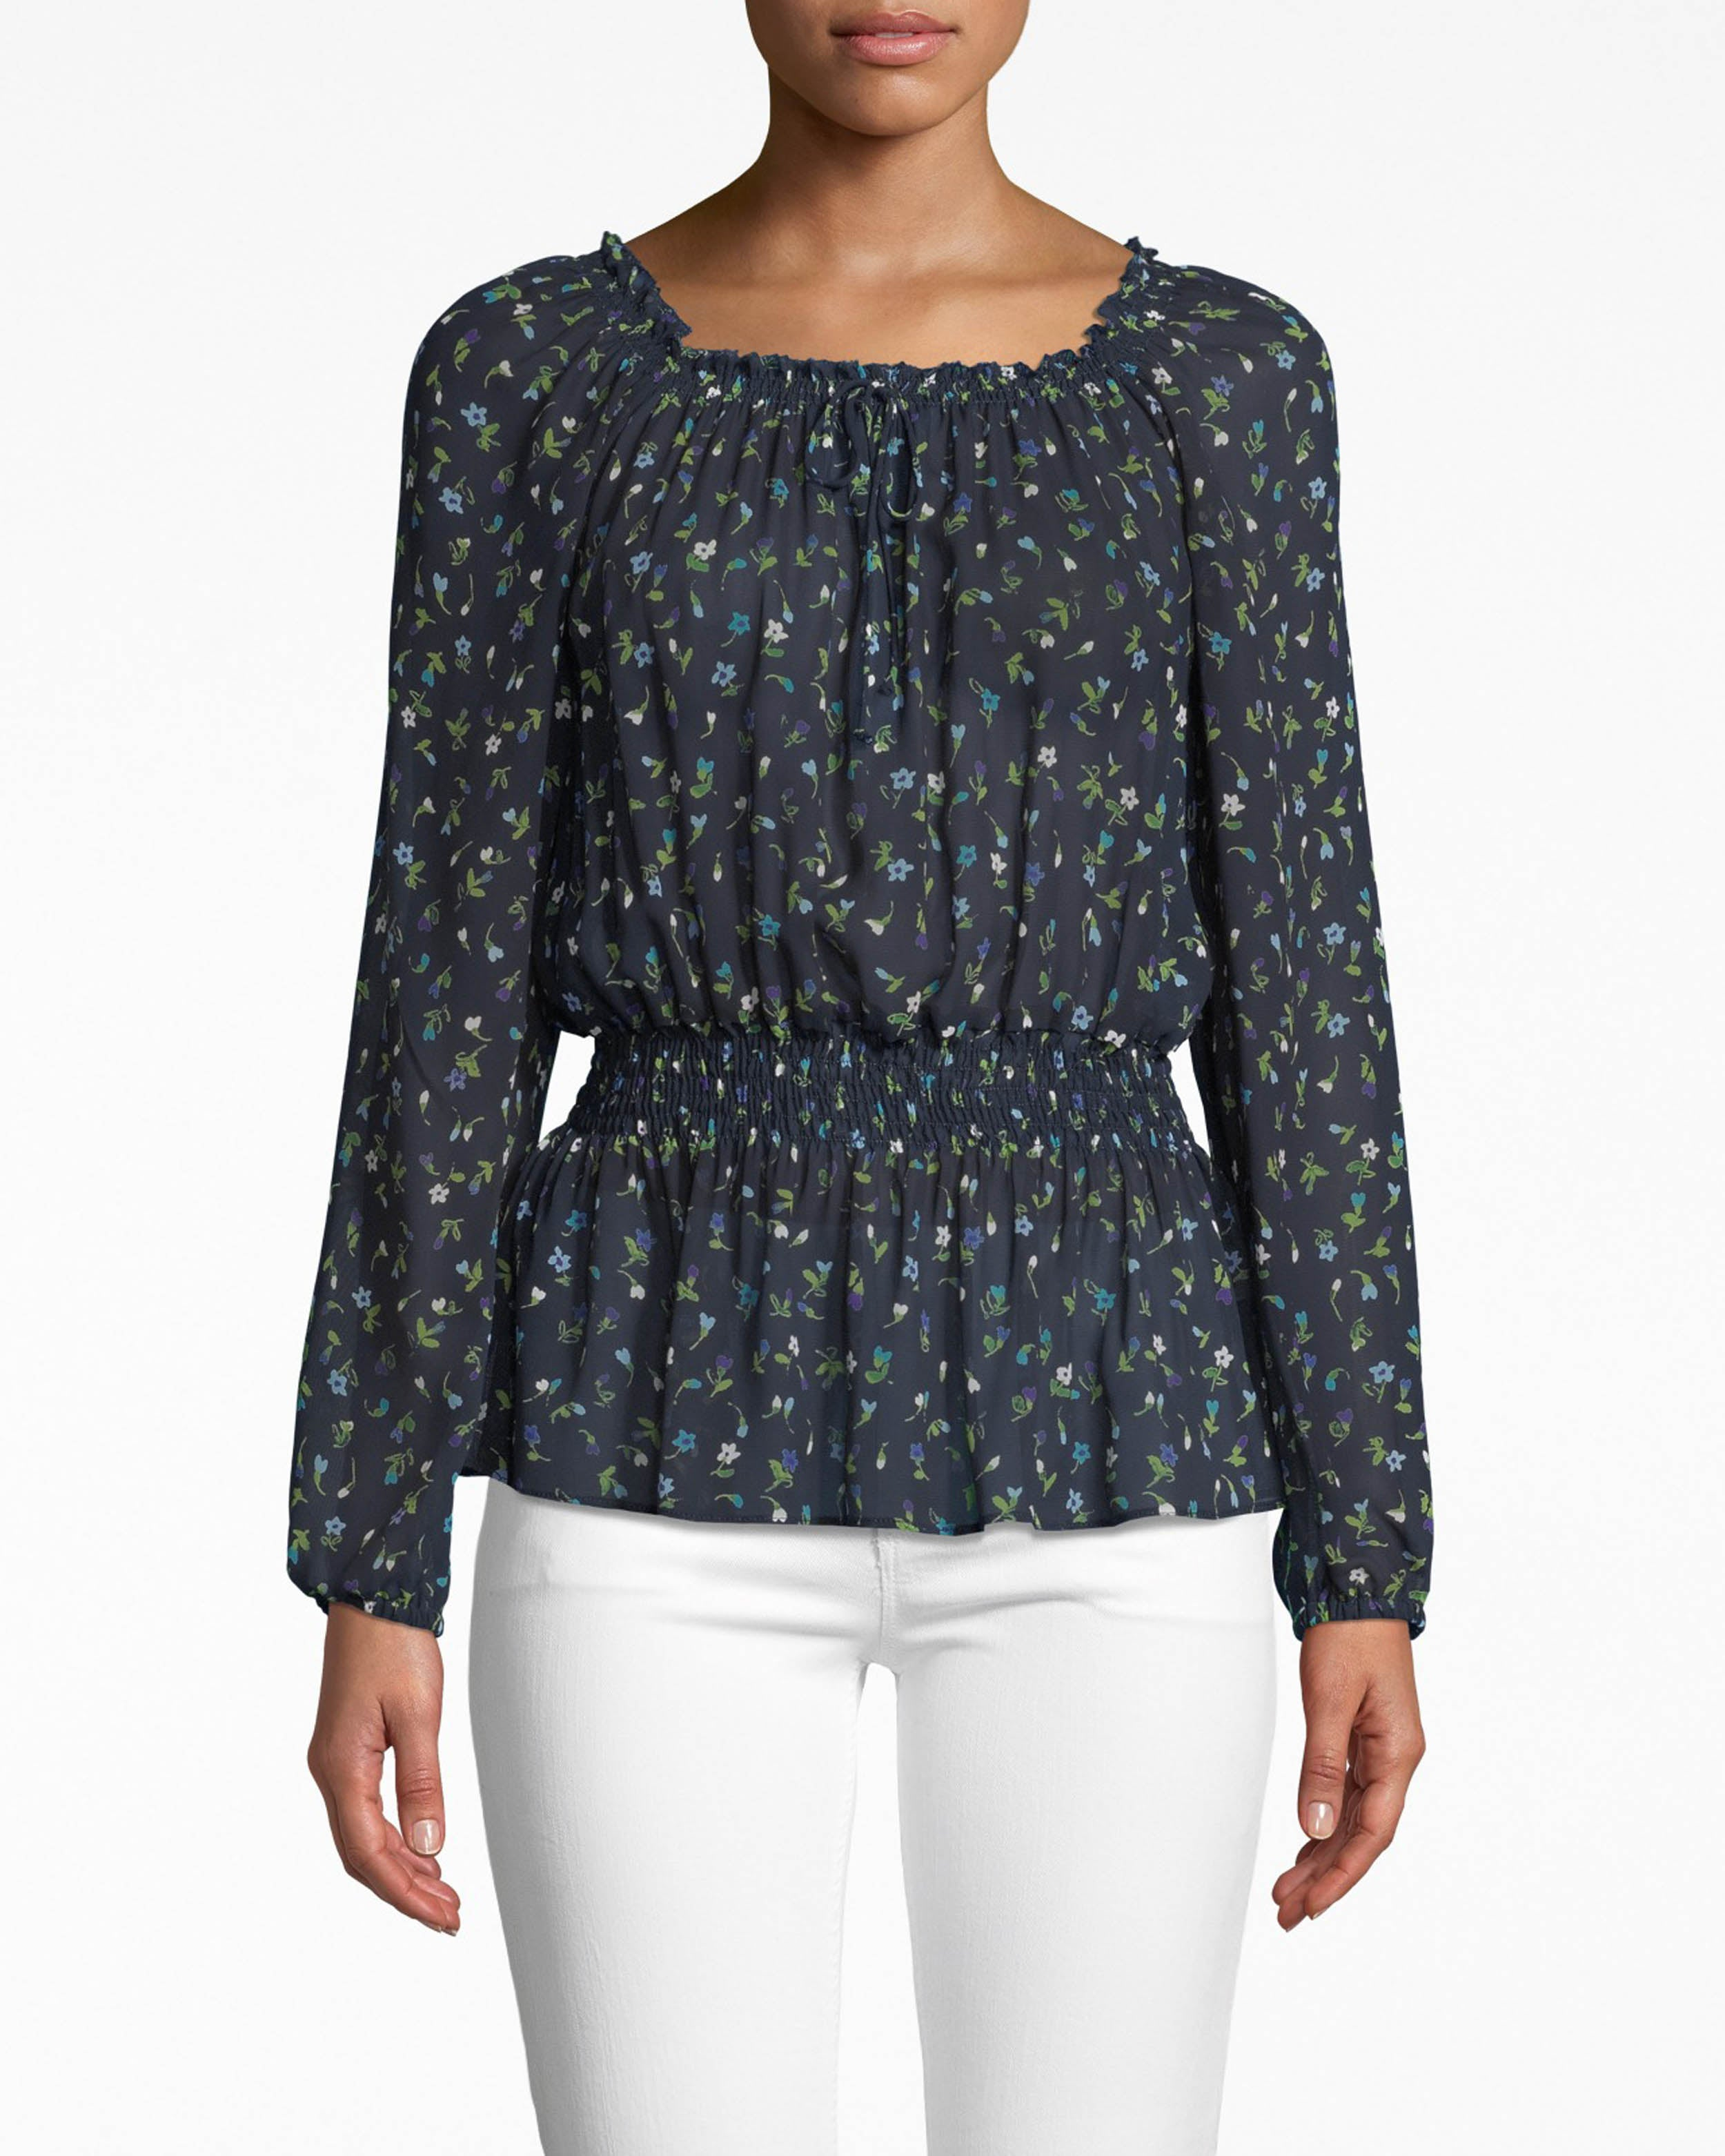 nicole miller ditsy floral long sleeve smocked blouse in ditsy floral blue | silk/viscose/leather | size petite